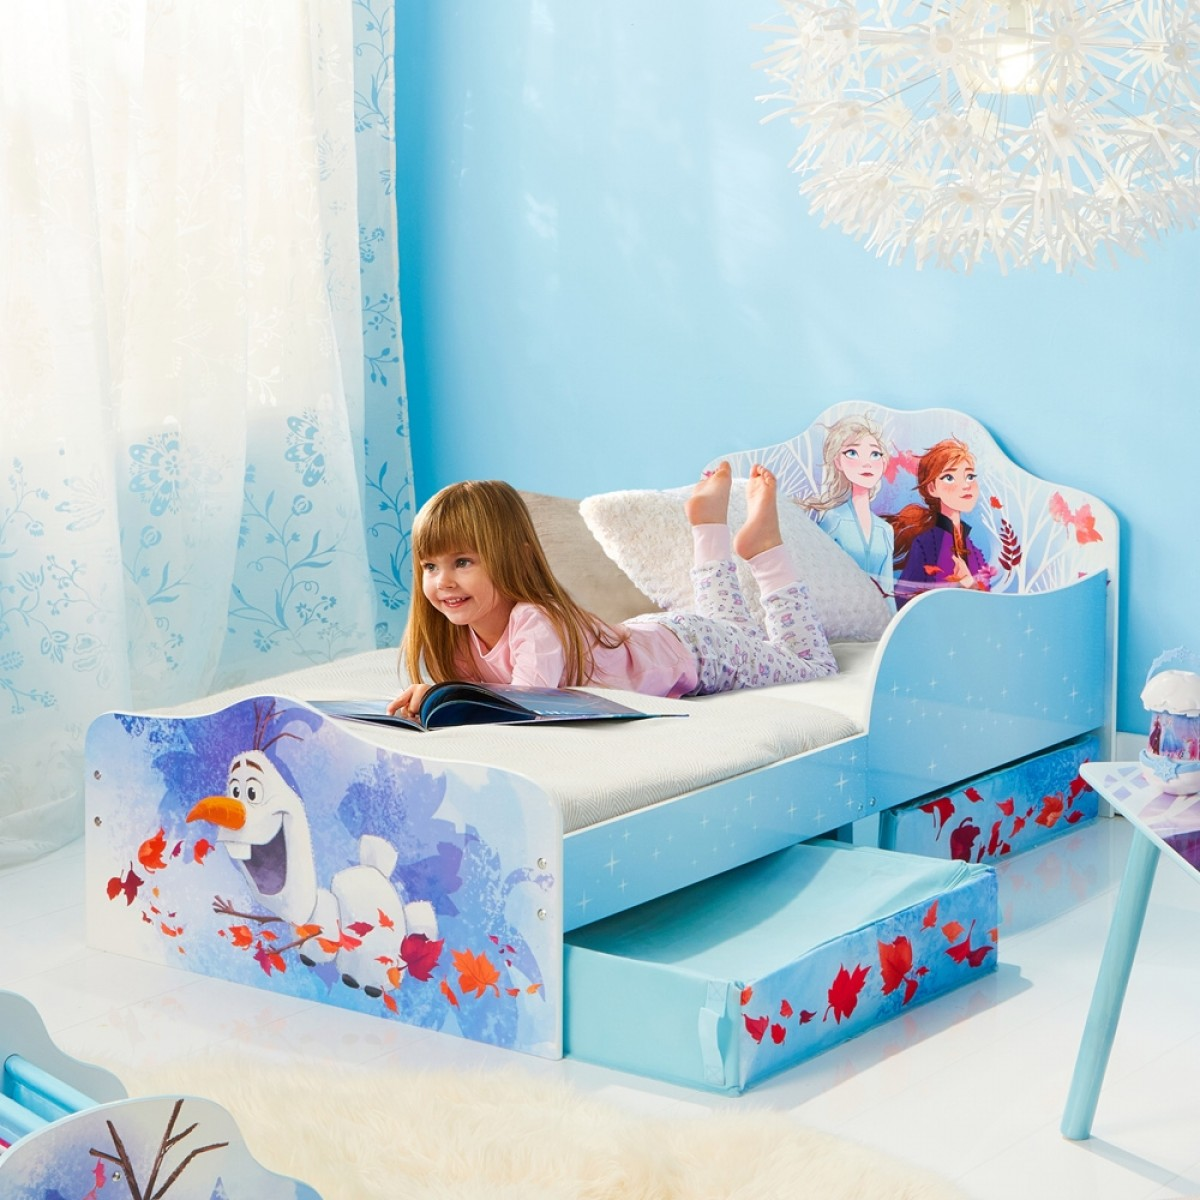 Frozen 2 Elsa and Anna Toddler 2 Drawer Storage Bed